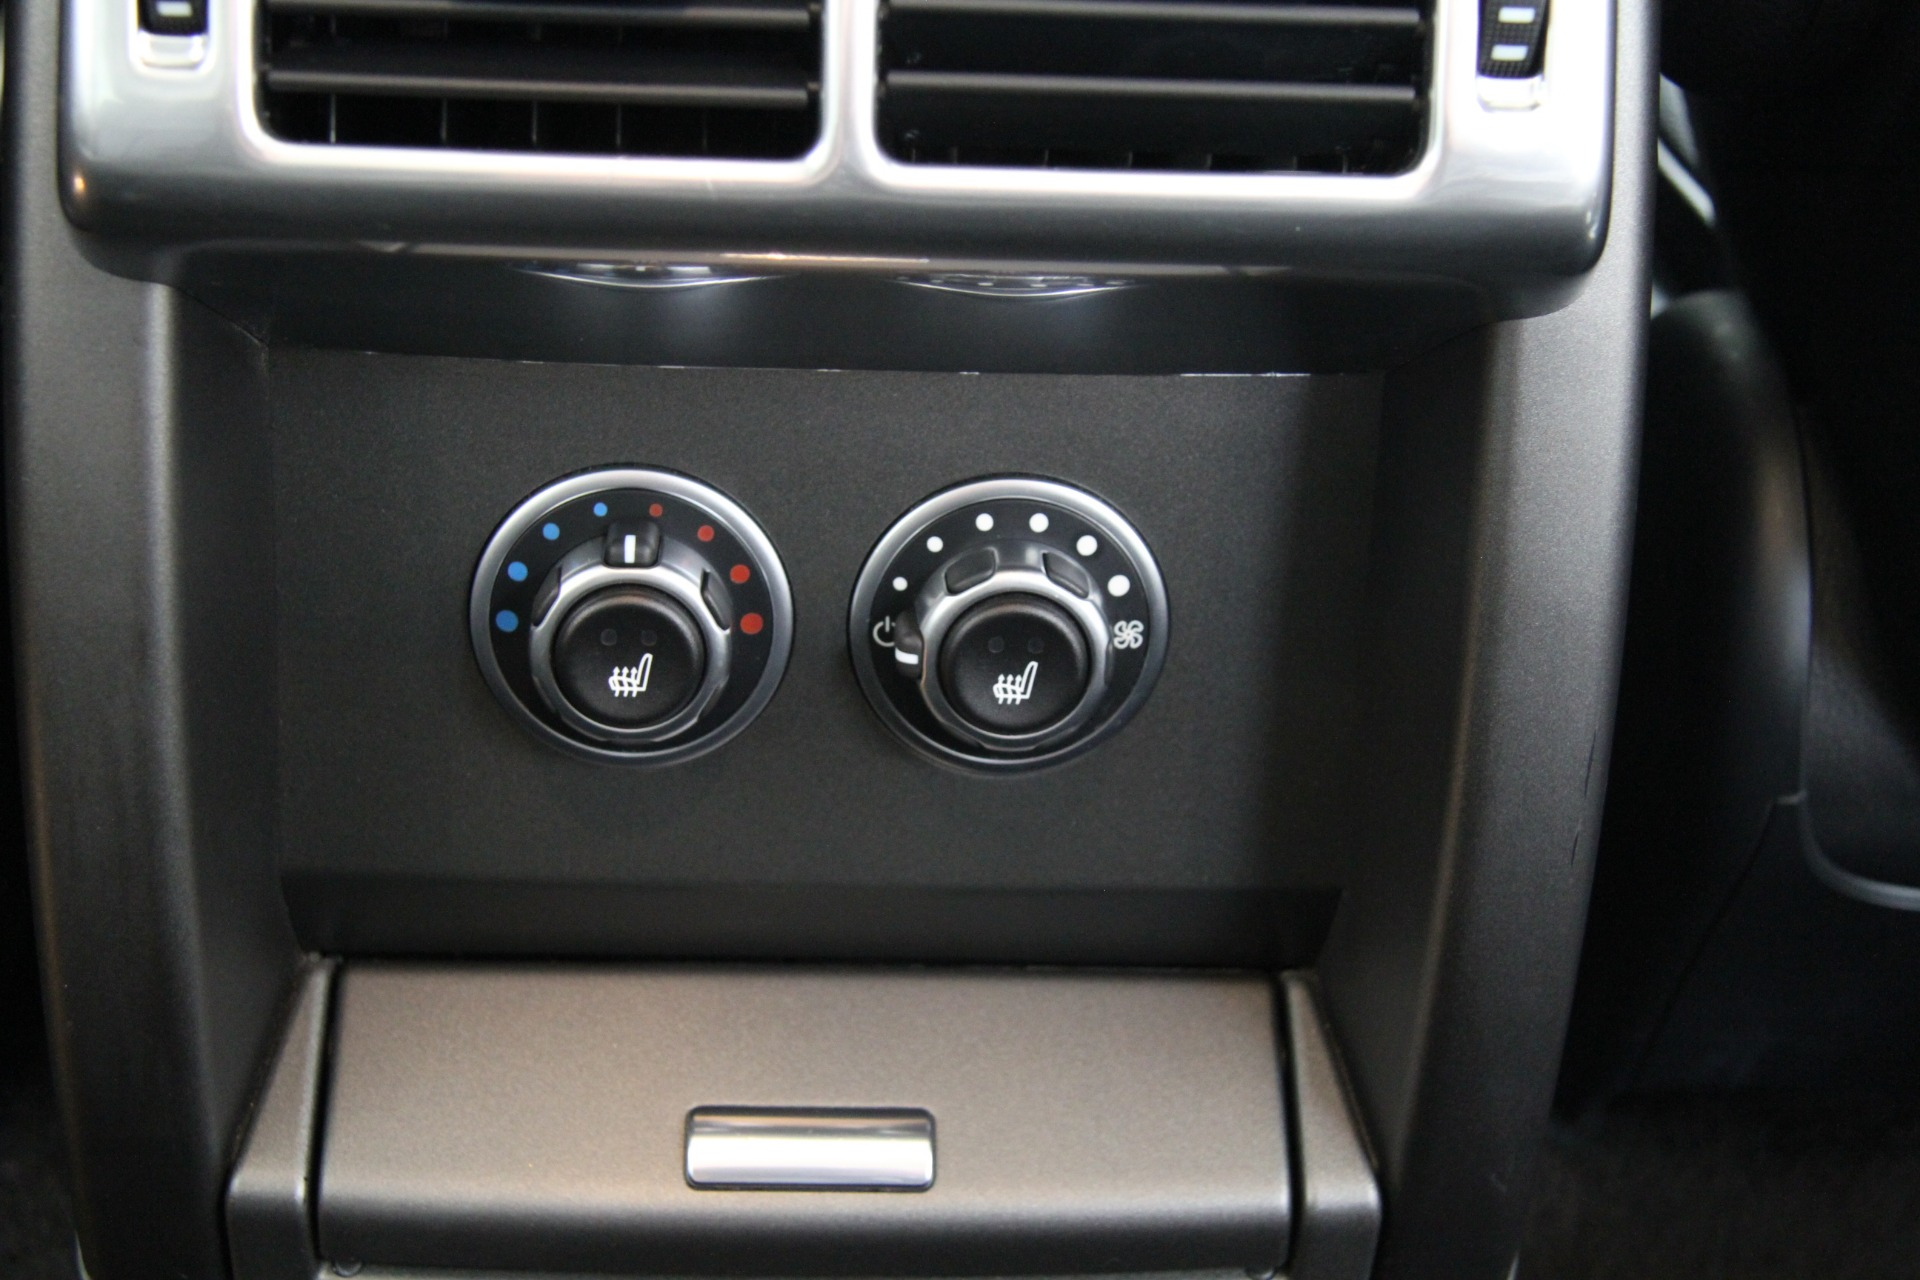 Used Range Rover For Sale Near Me >> 2012 Land Rover Range Rover HSE Stock # 5810A for sale ...